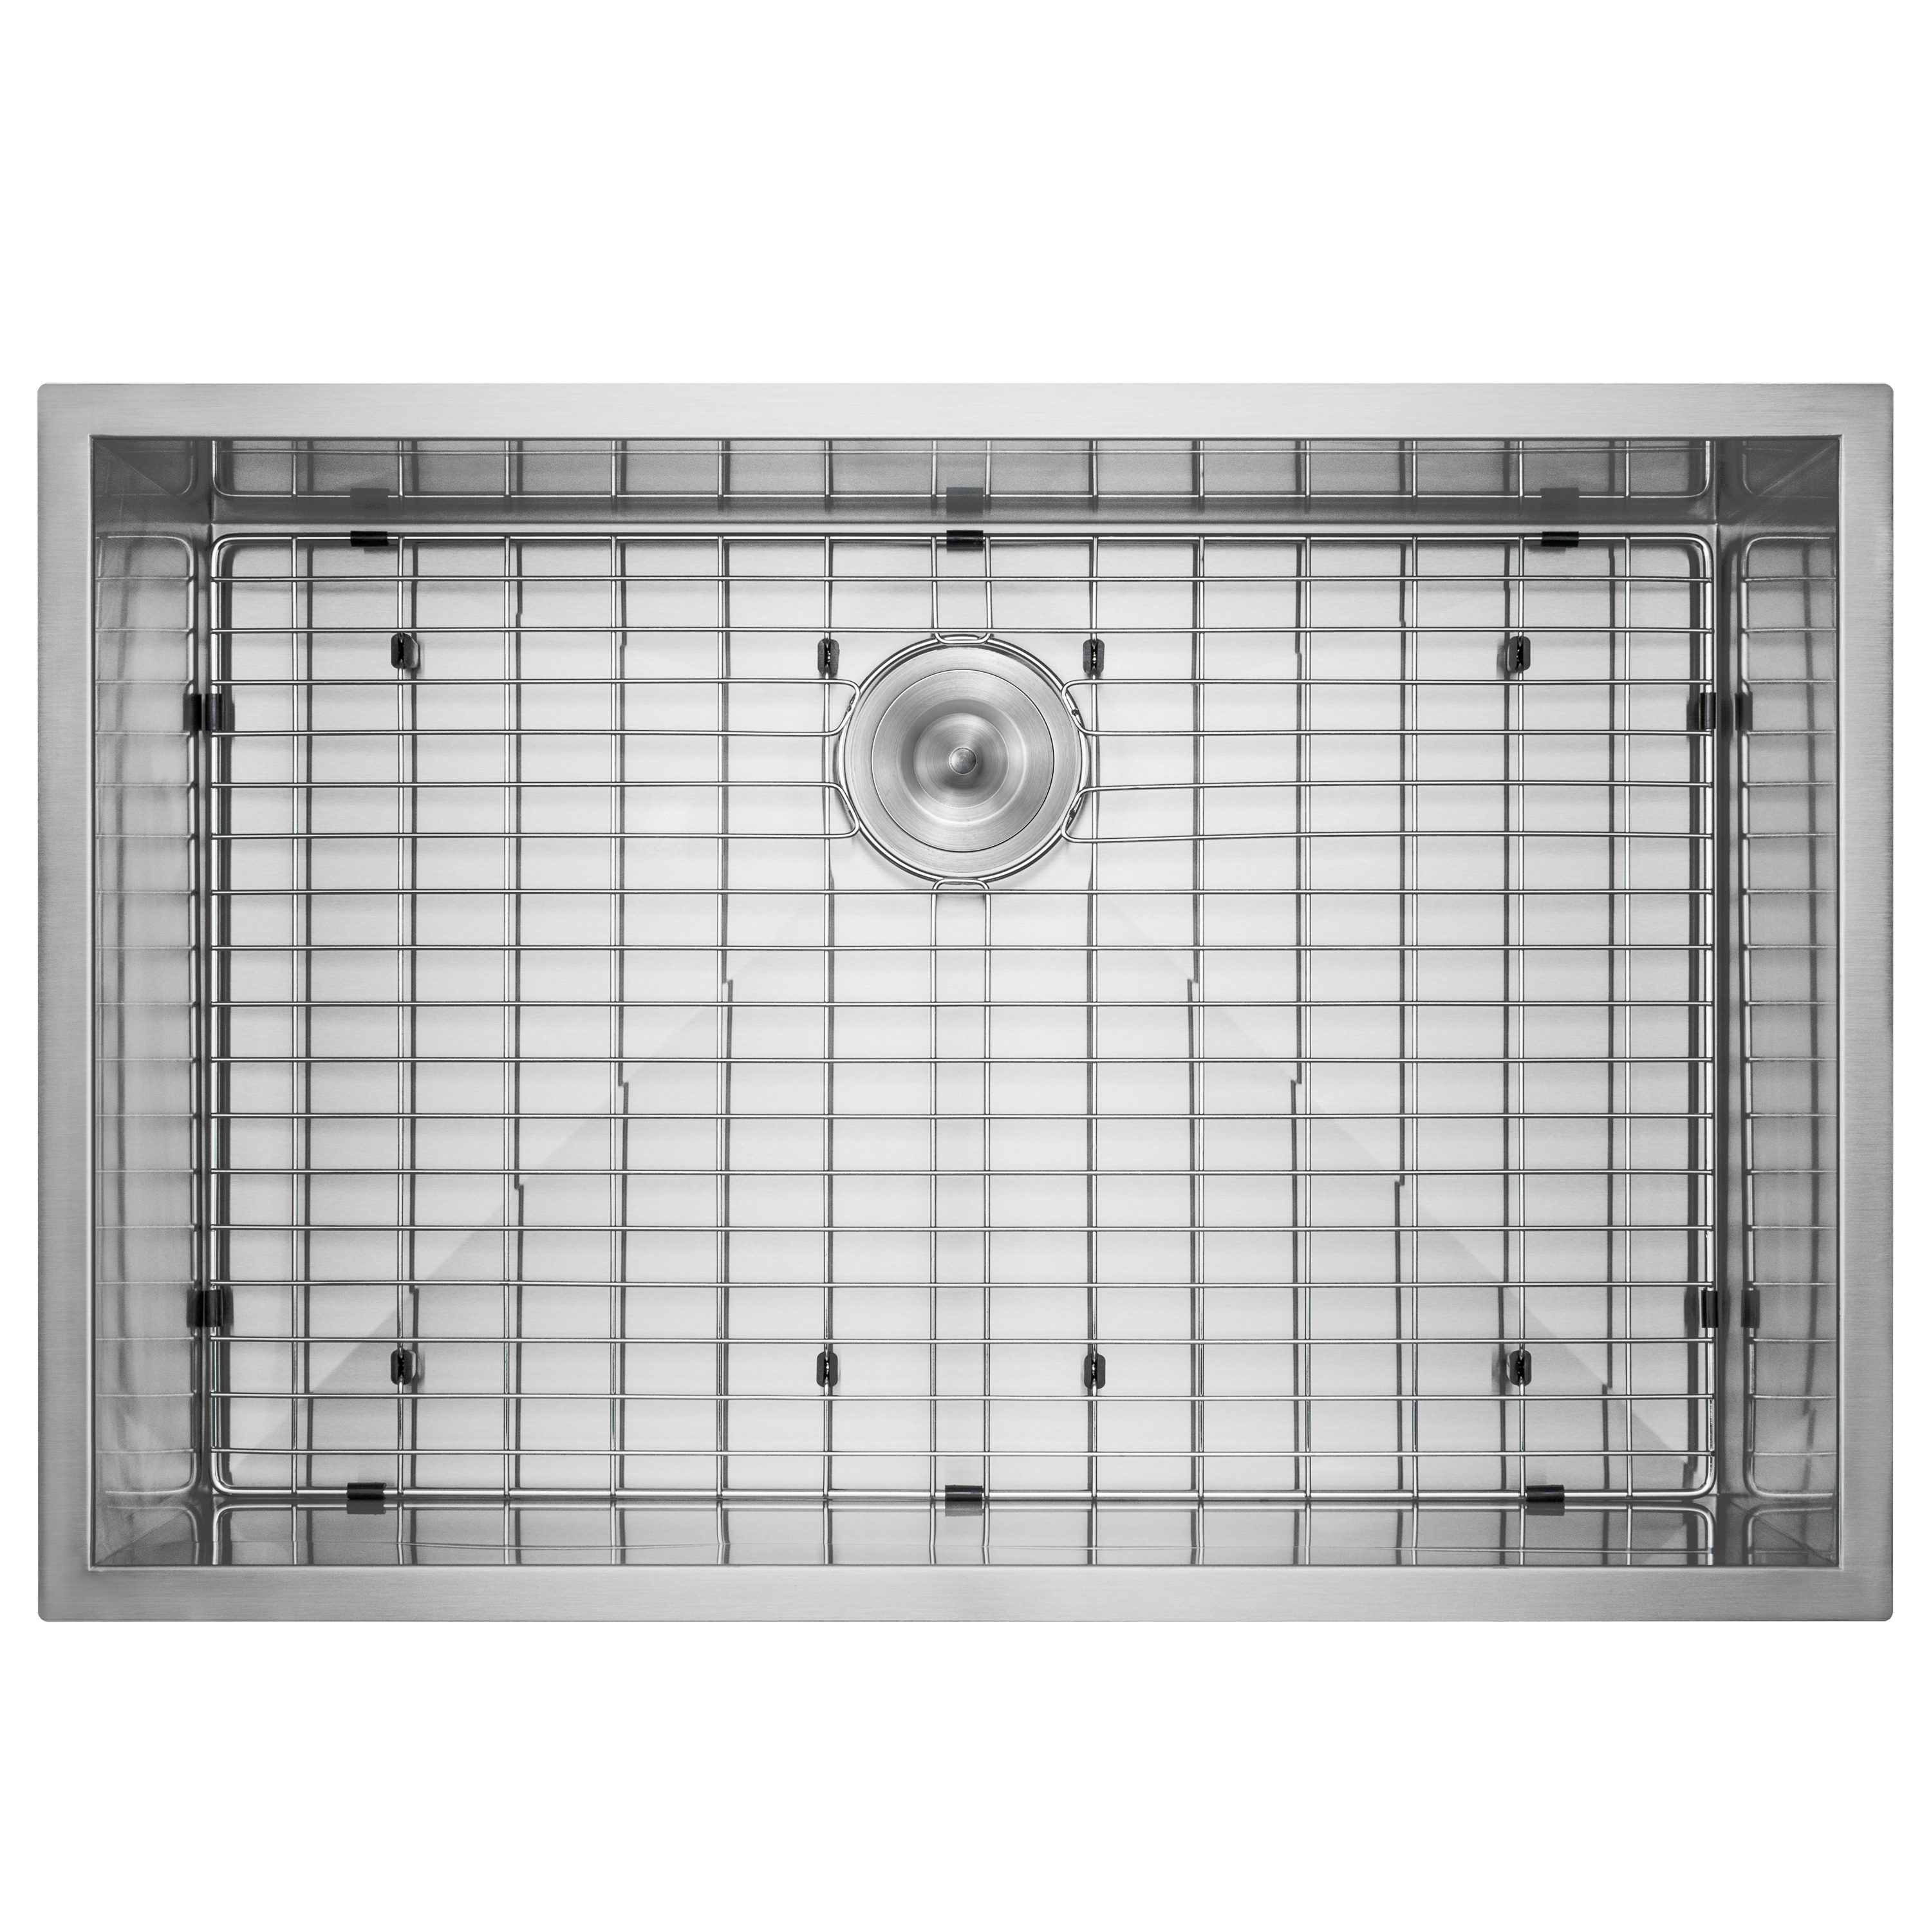 "Image of AKDY 33"" x 22"" x 9"" Handmade Under Mount Single Basin Stainless Steel Kitchen Sink Dish Grid w/ Drain Kit"